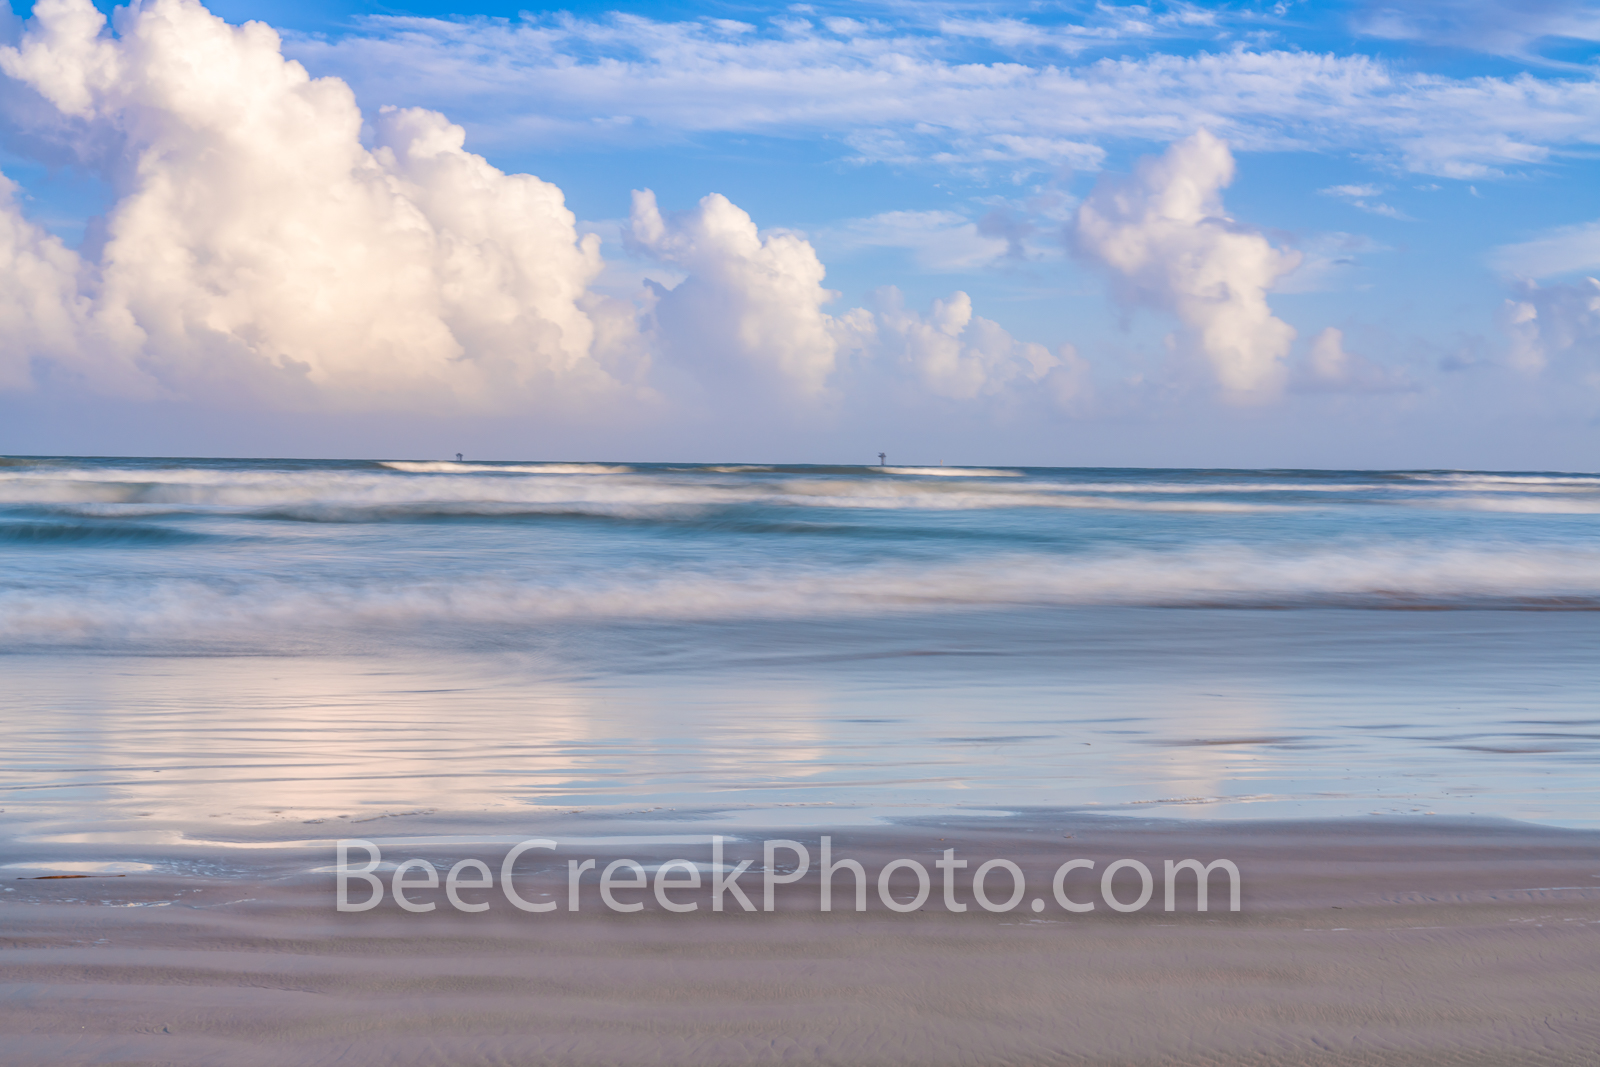 Coastal-Tranquility - Surf up, what more can I say sandy beach, ocean waves, and sky is all you need in this image to see along...